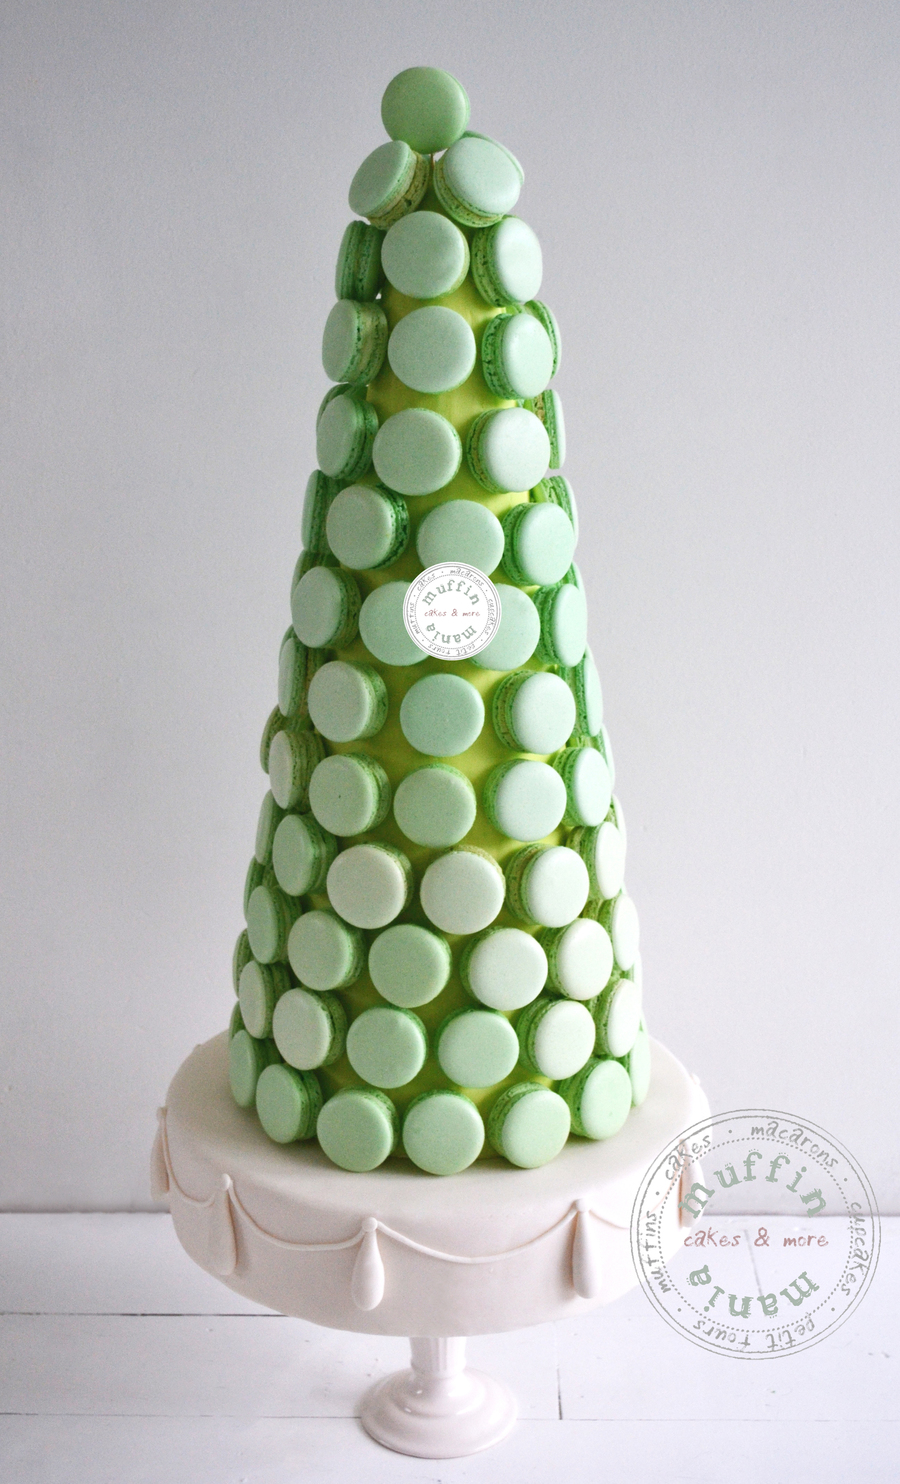 Macaron Tower on Cake Central